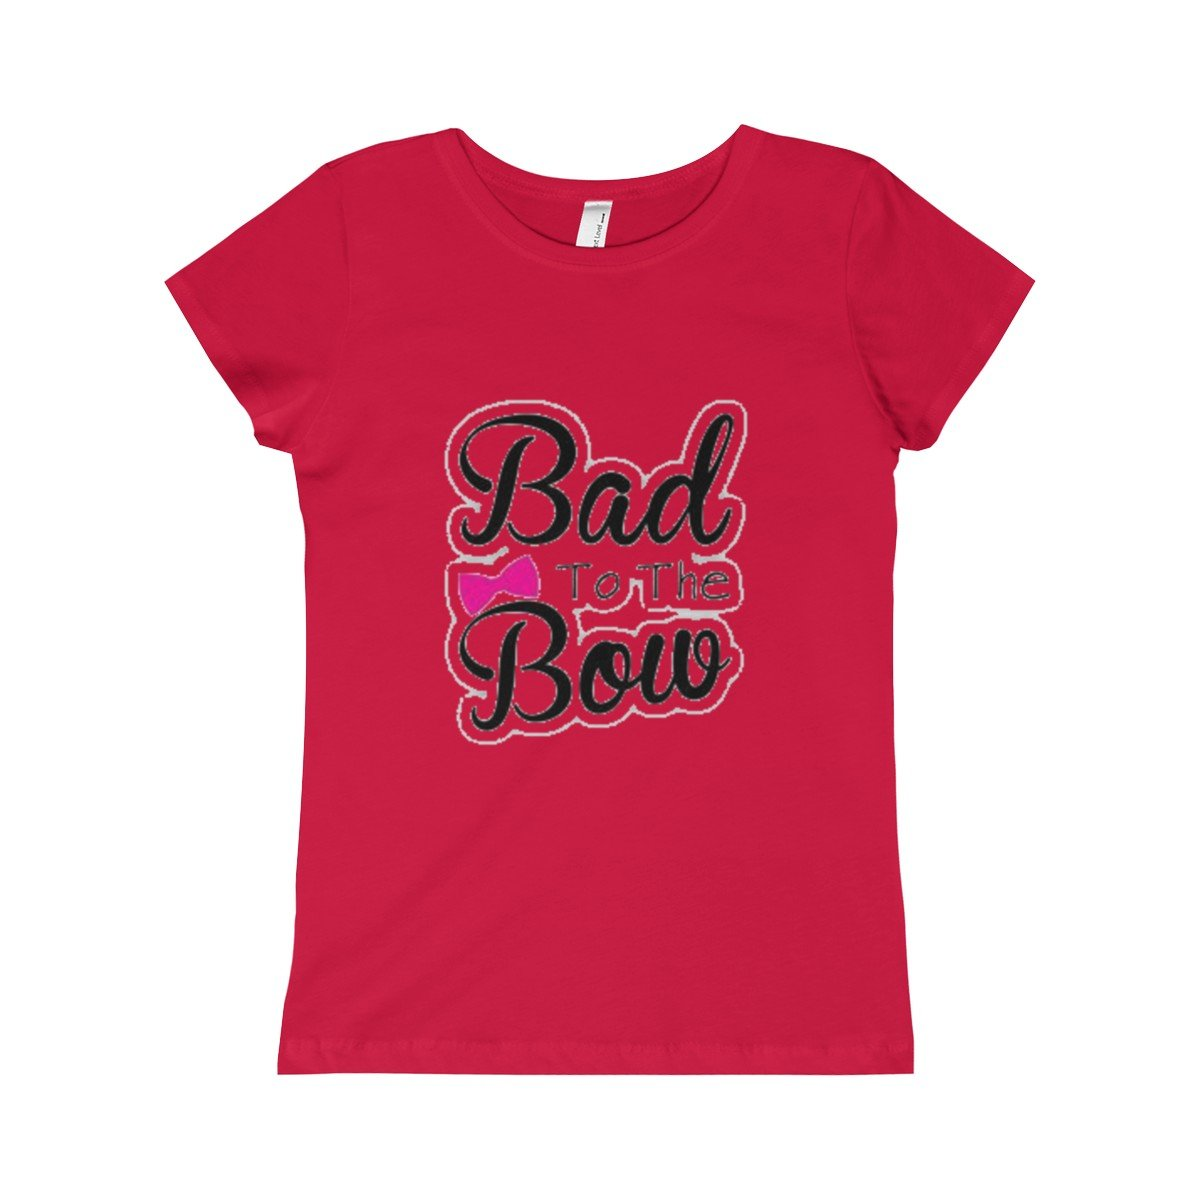 Girls Bad to Bow Princess Tee